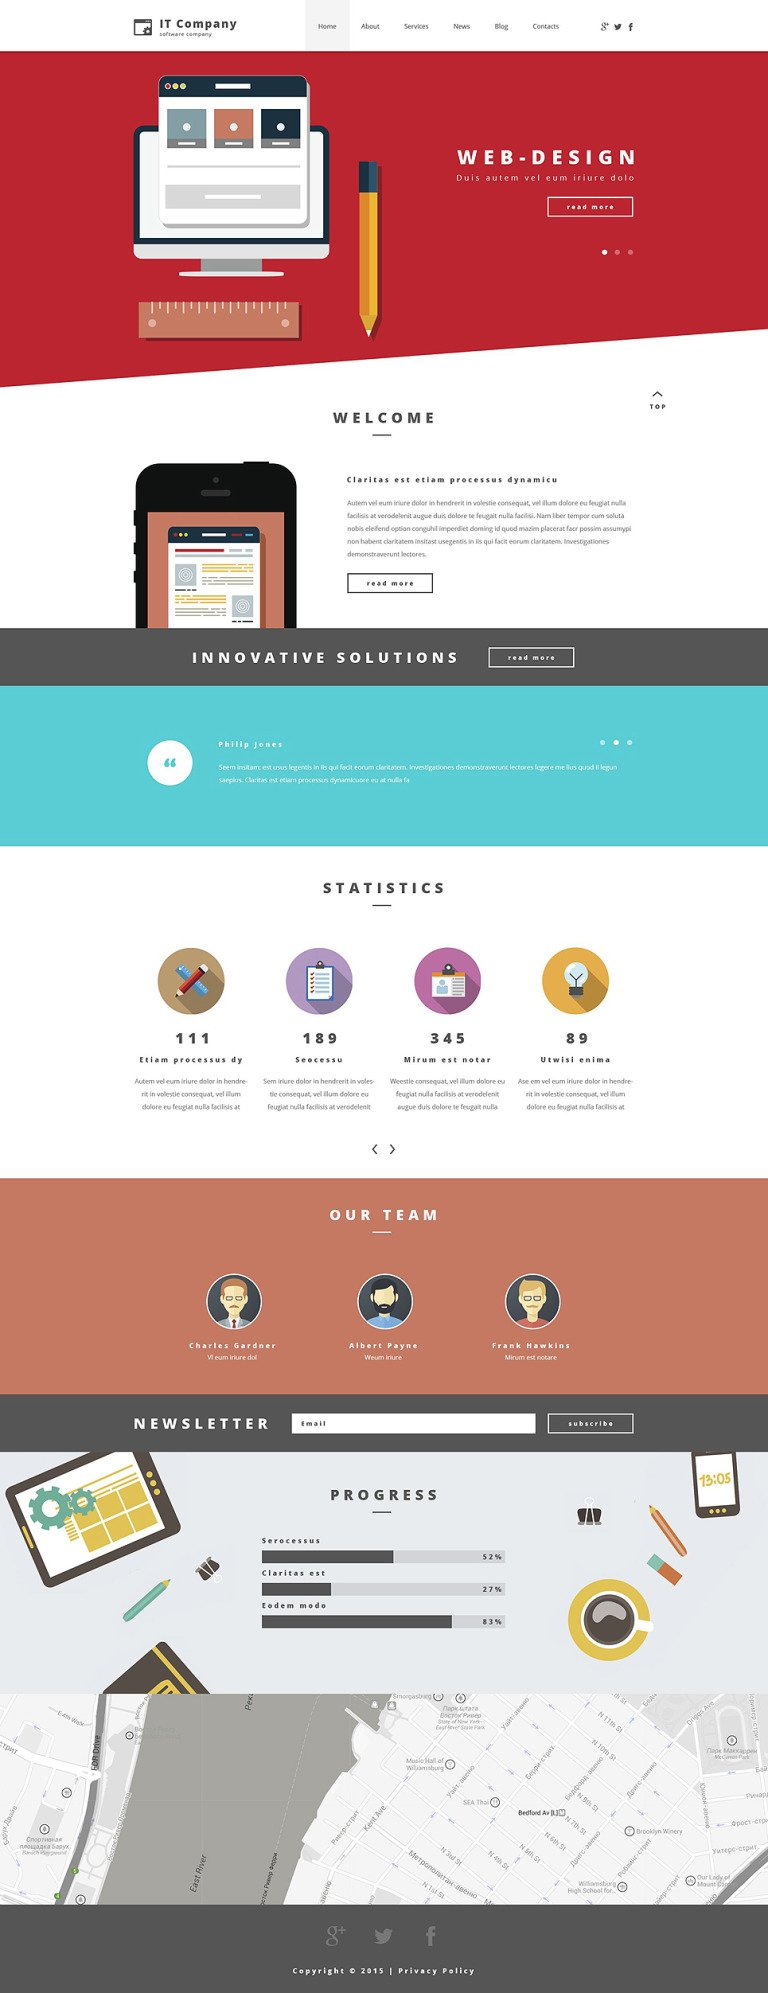 IT Company WordPress Theme New Screenshots BIG